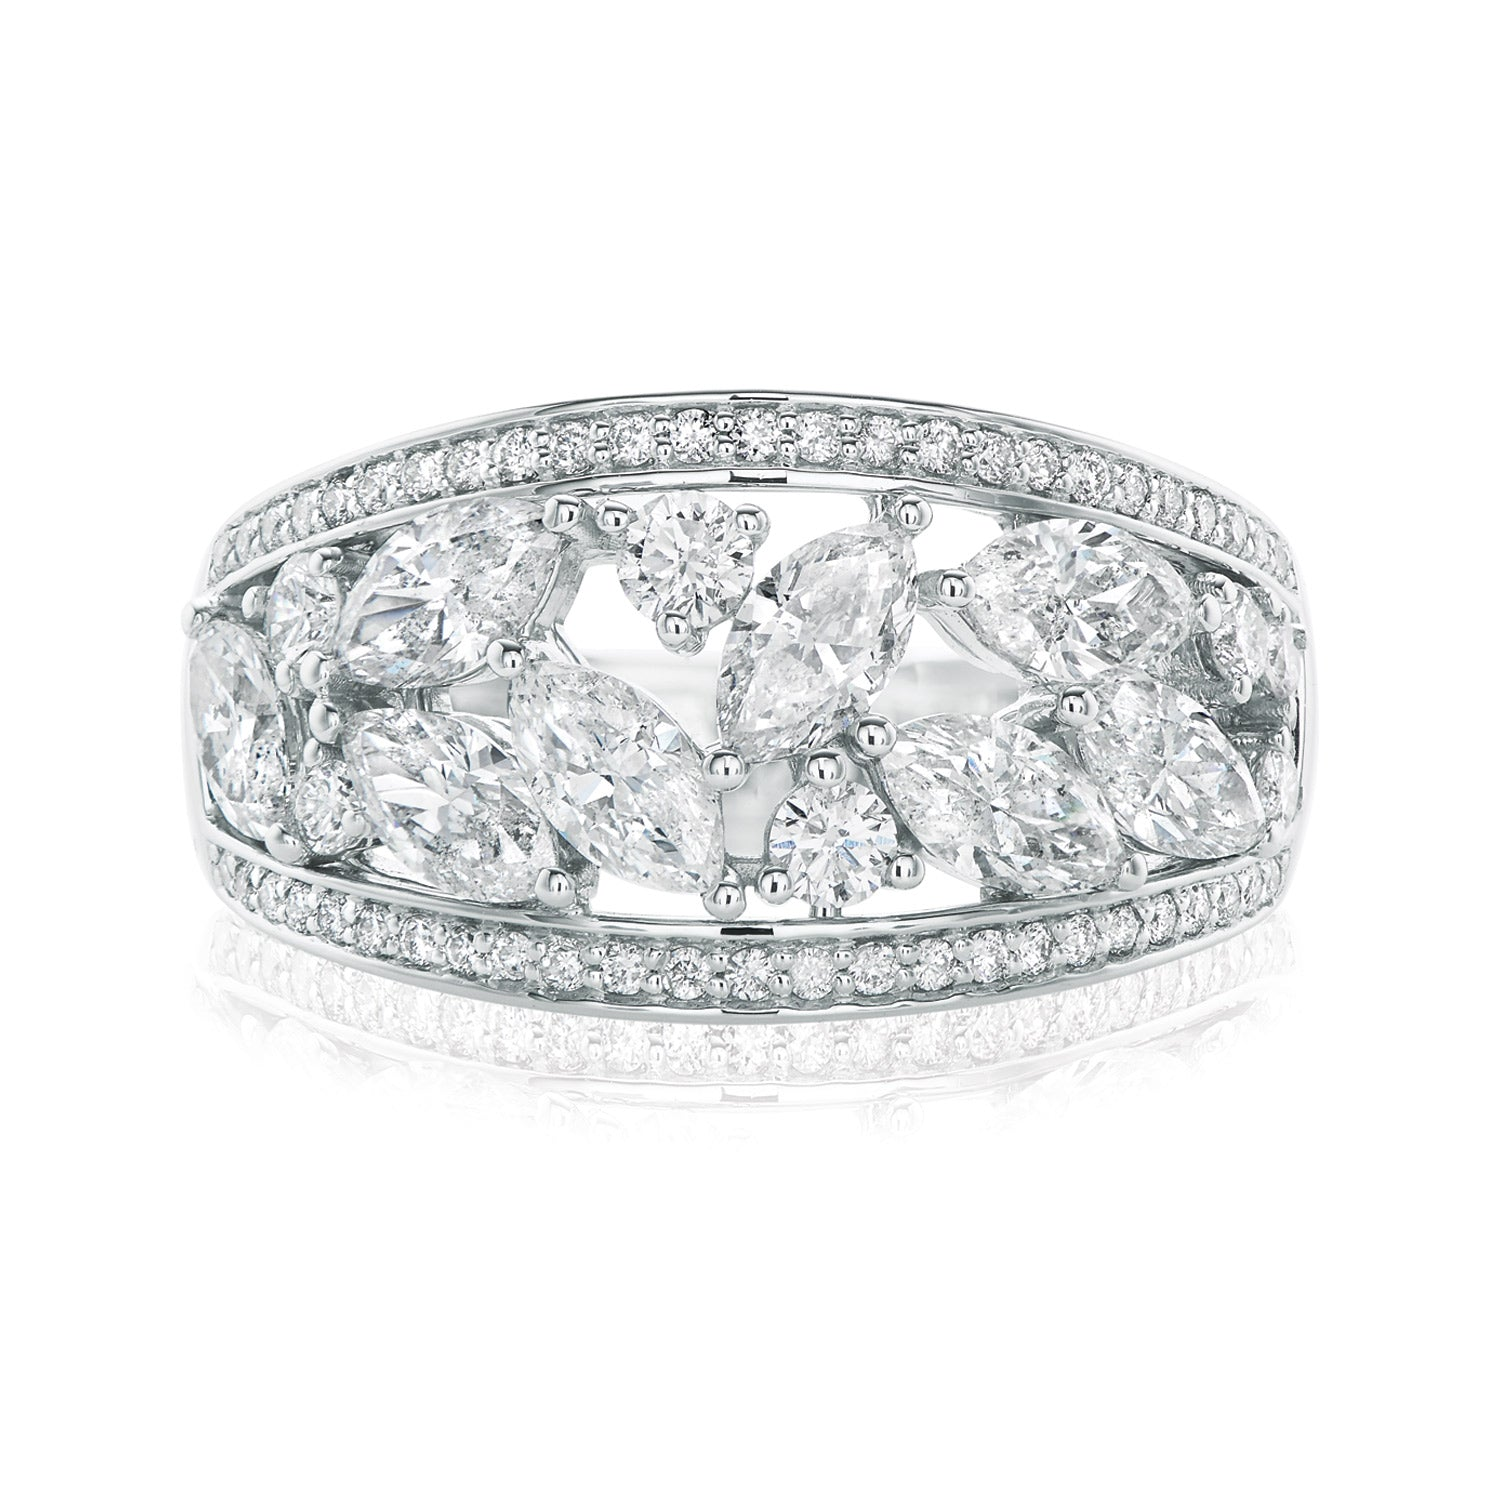 9ct White Gold Marquise & Round Brilliant Cut with 2 CARAT tw of Diamonds